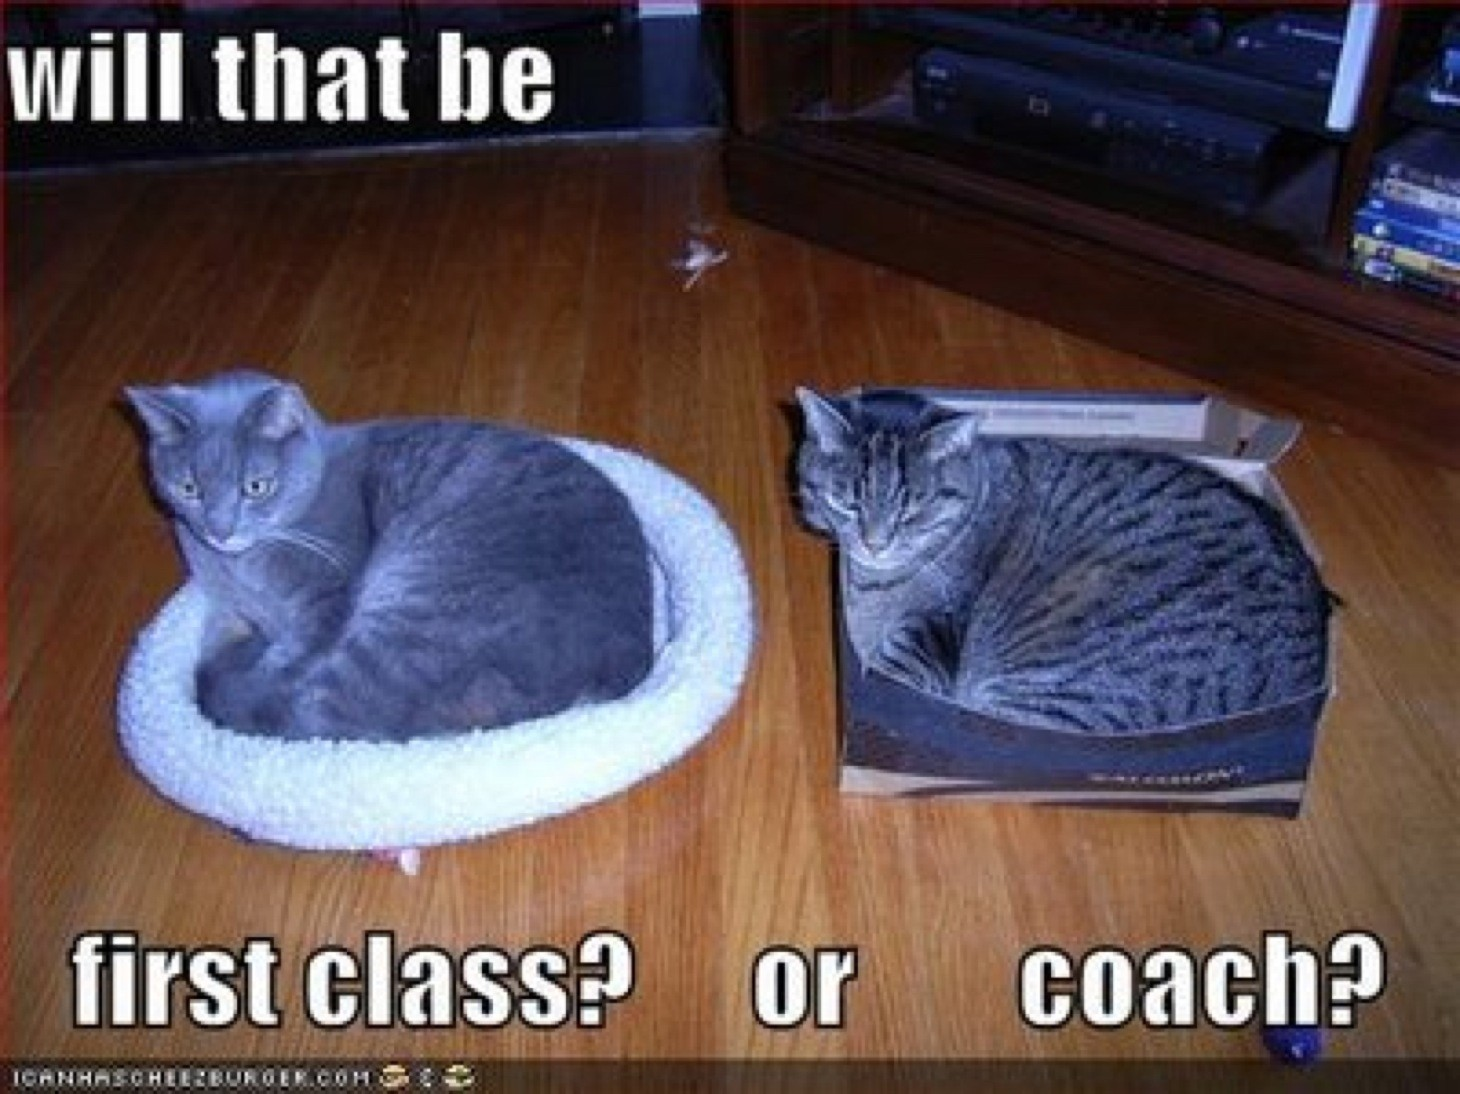 wpid-cat-firstclass-or-coach.jpg